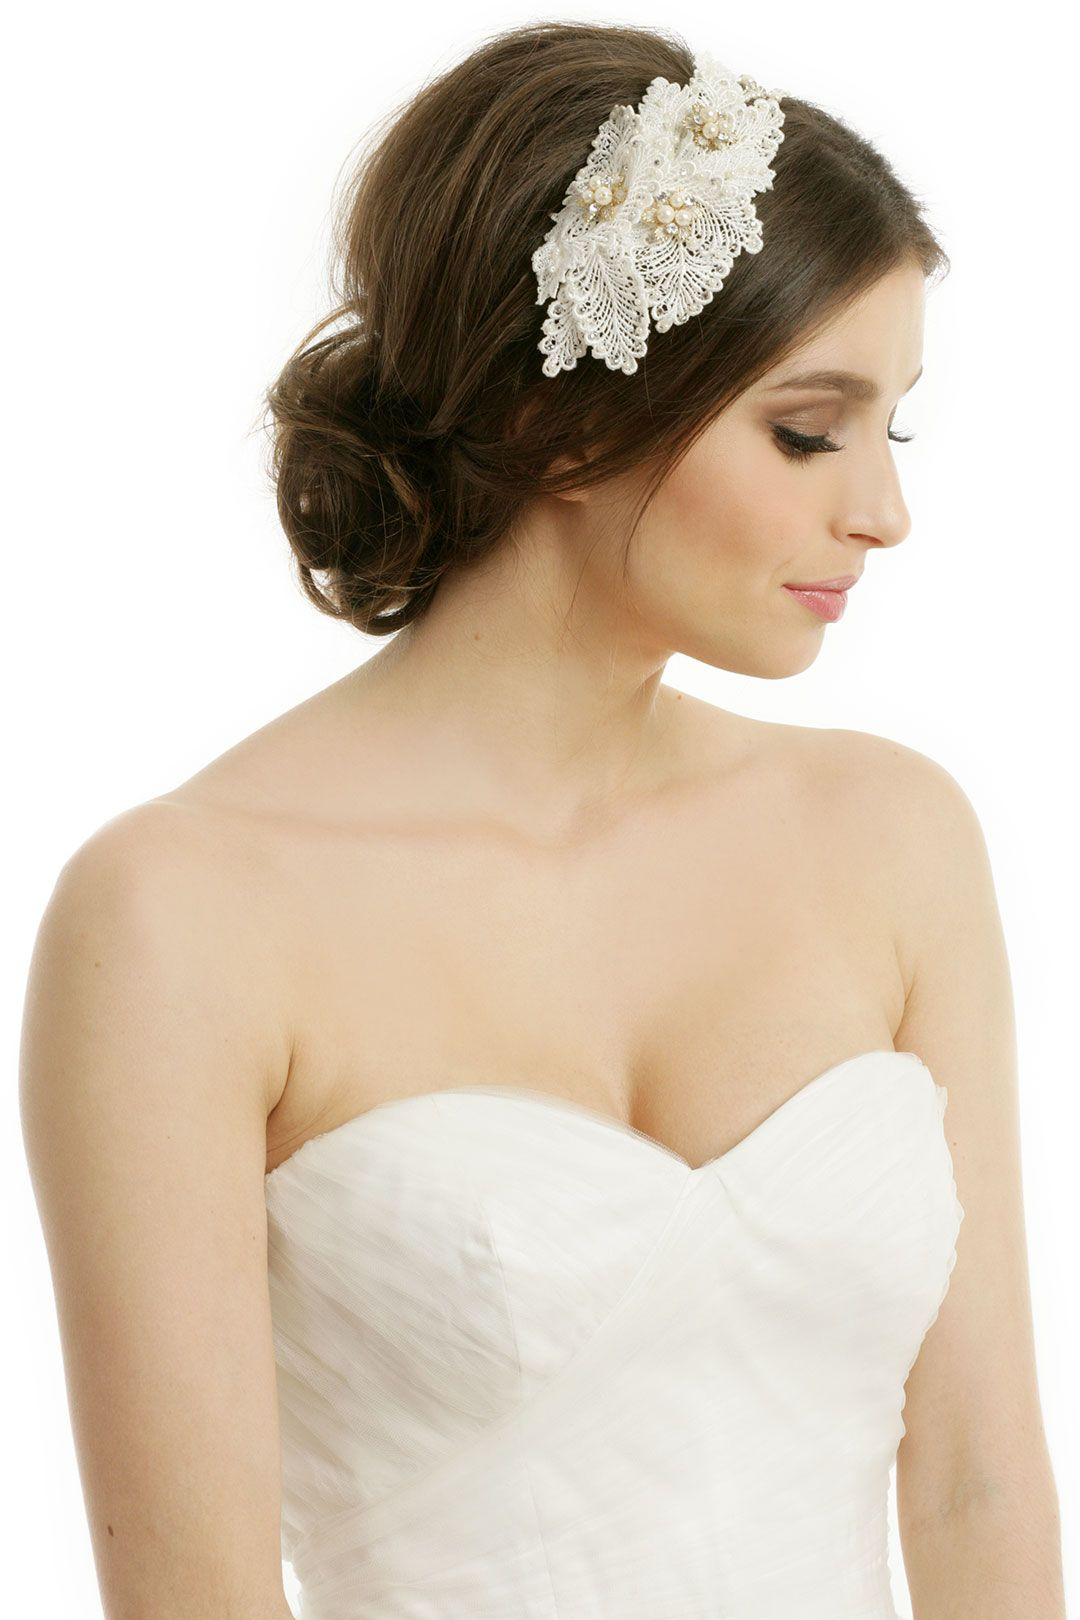 rtr bridal accessories pretty in pearls headband #vintage